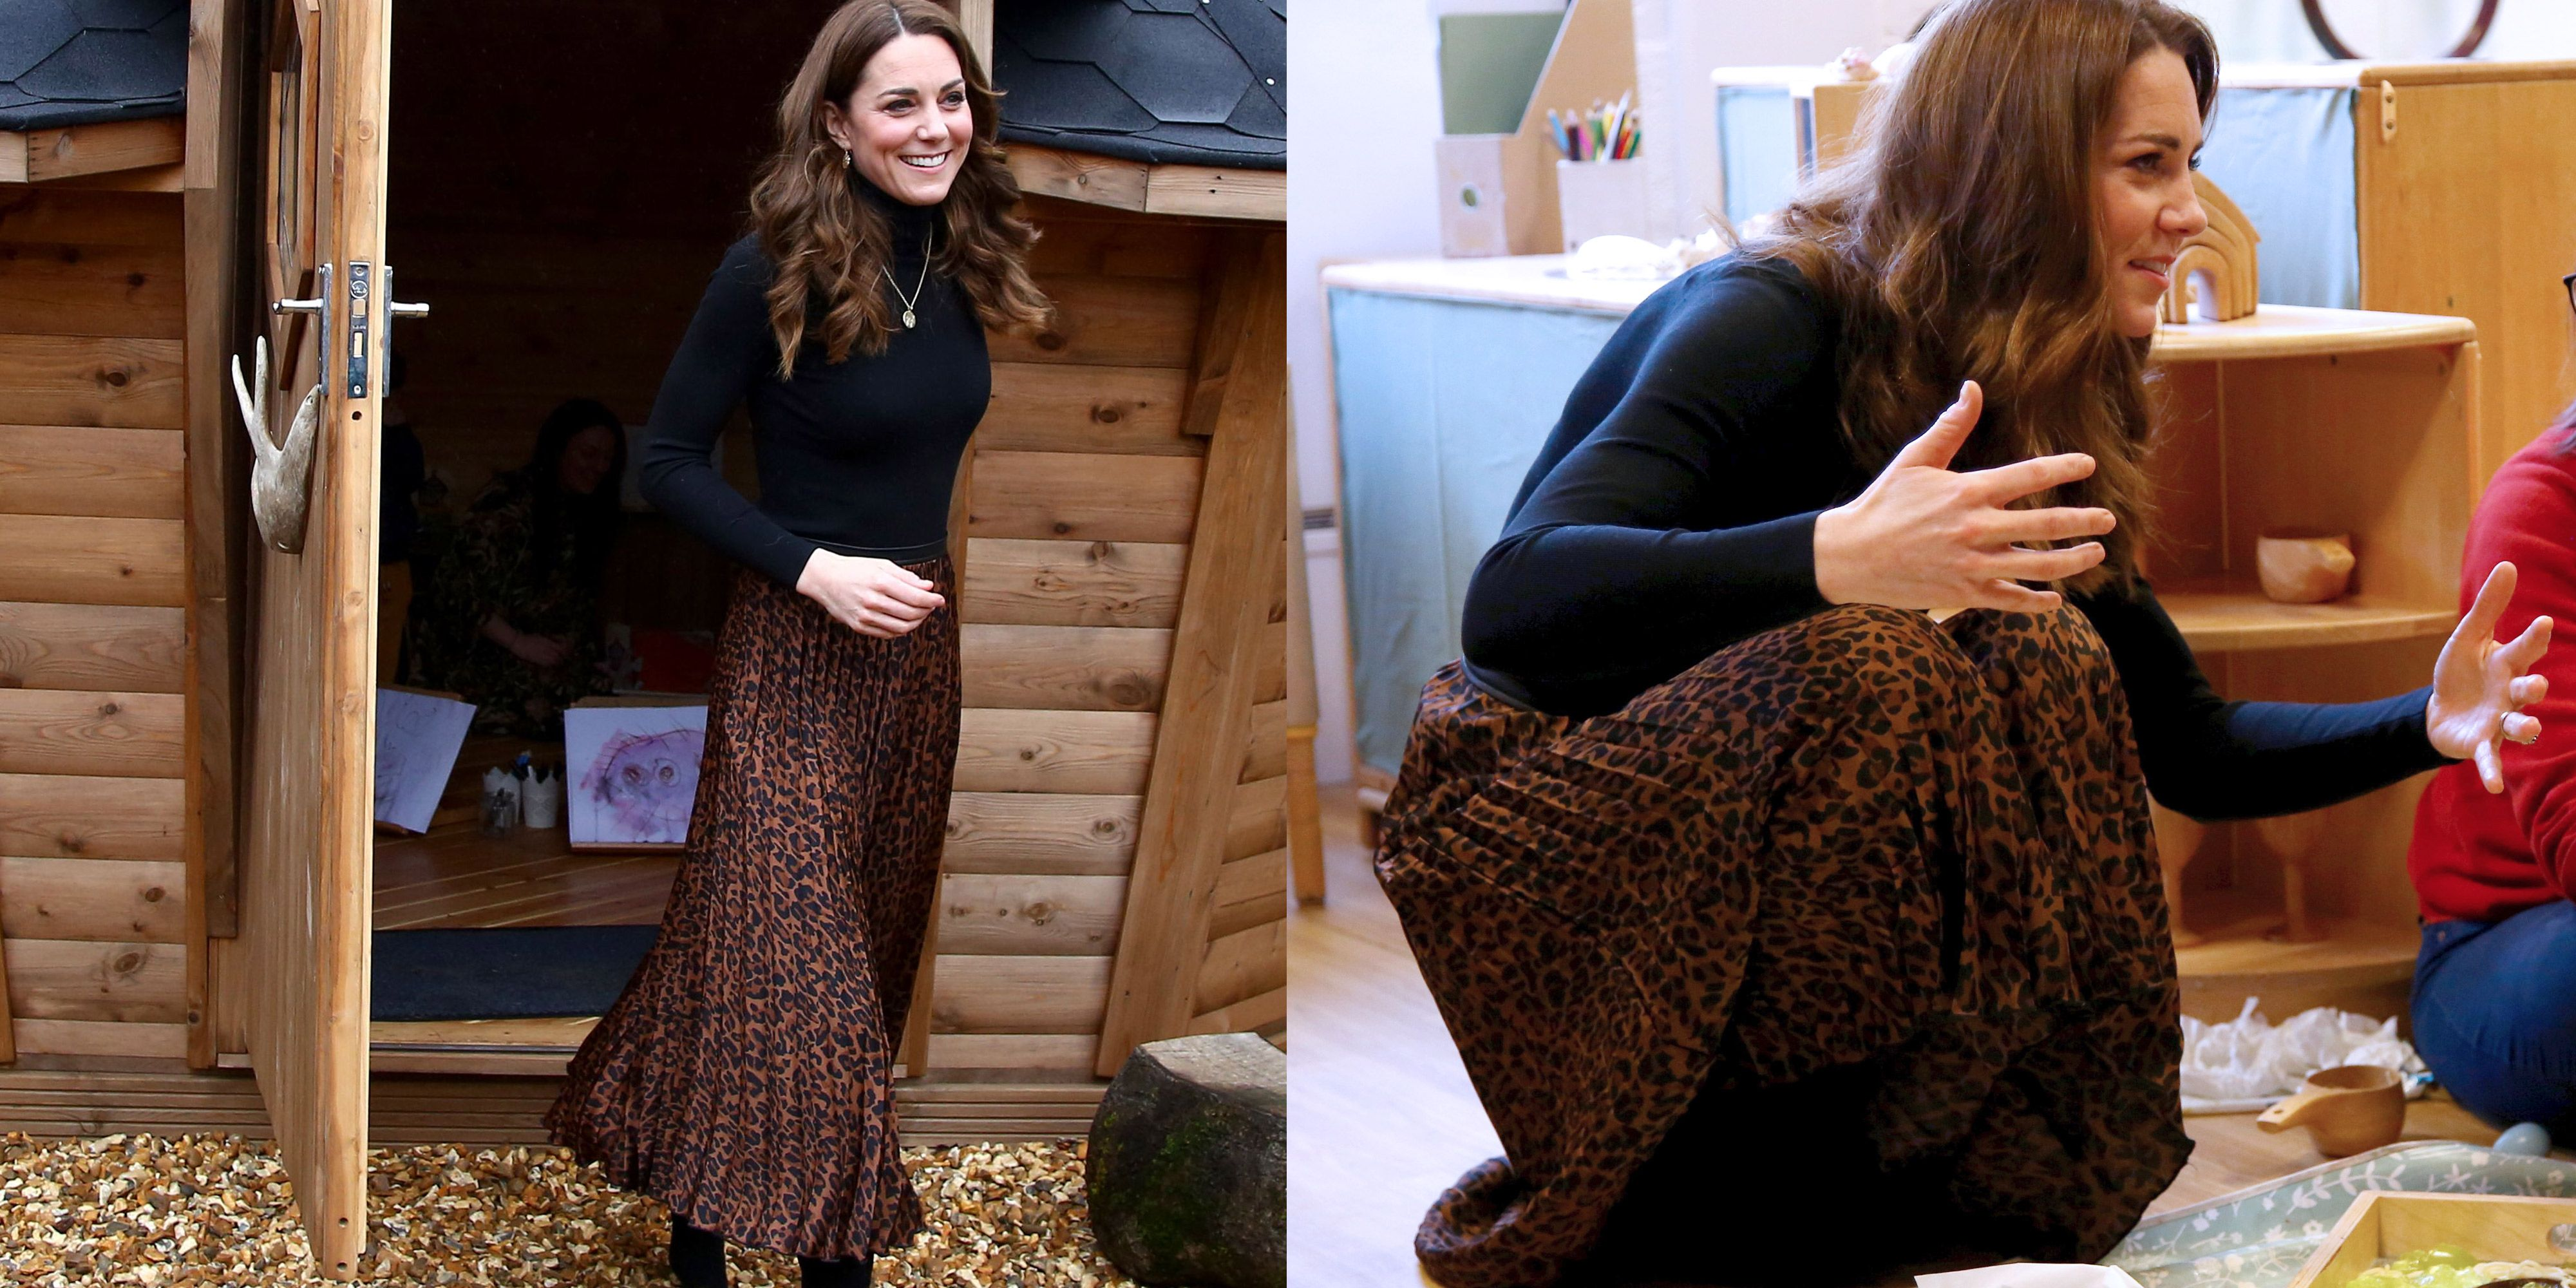 Kate Middleton Wore a Zara Leopard Print Skirt for a Visit to Wales